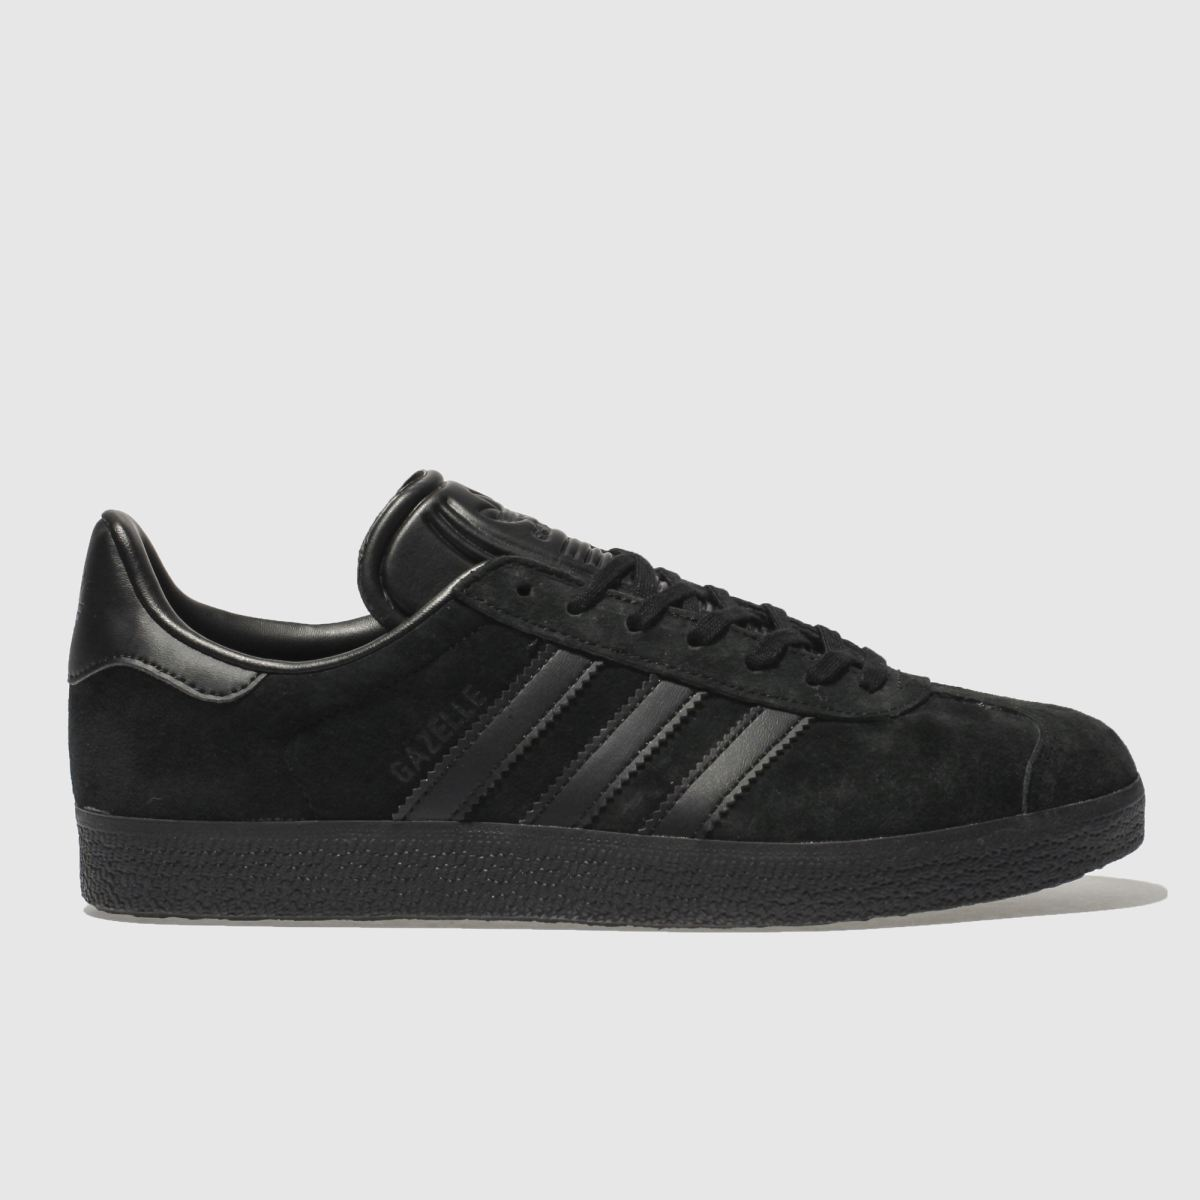 Adidas Black Gazelle Suede Trainers